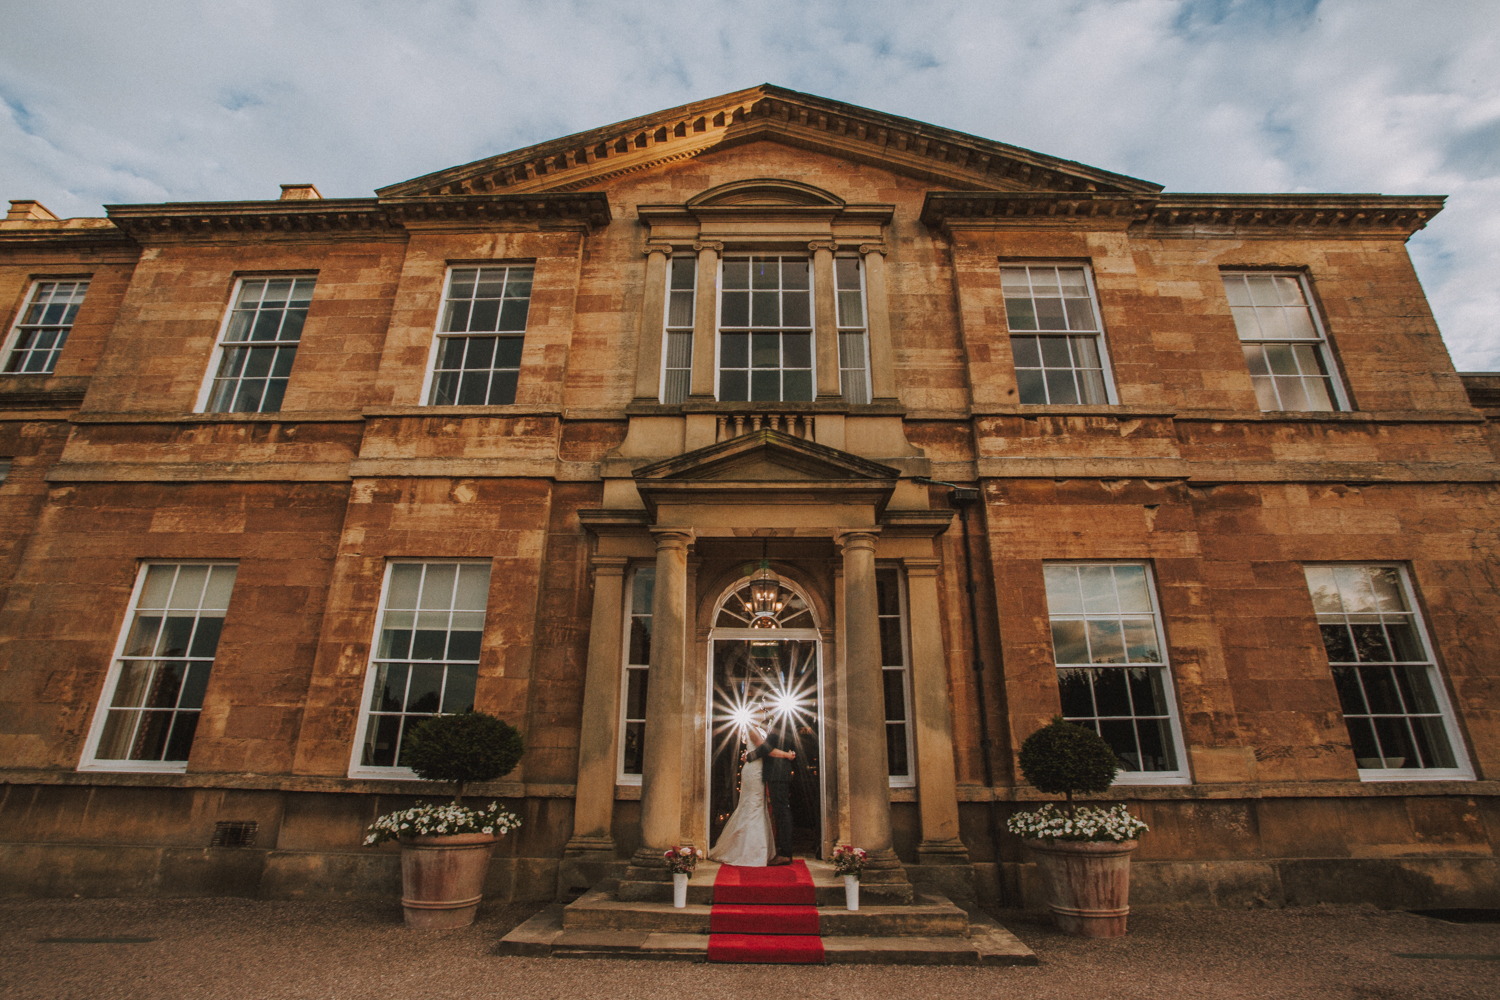 bowcliffe hall, wetherby, yorkshire wedding photography27.jpg